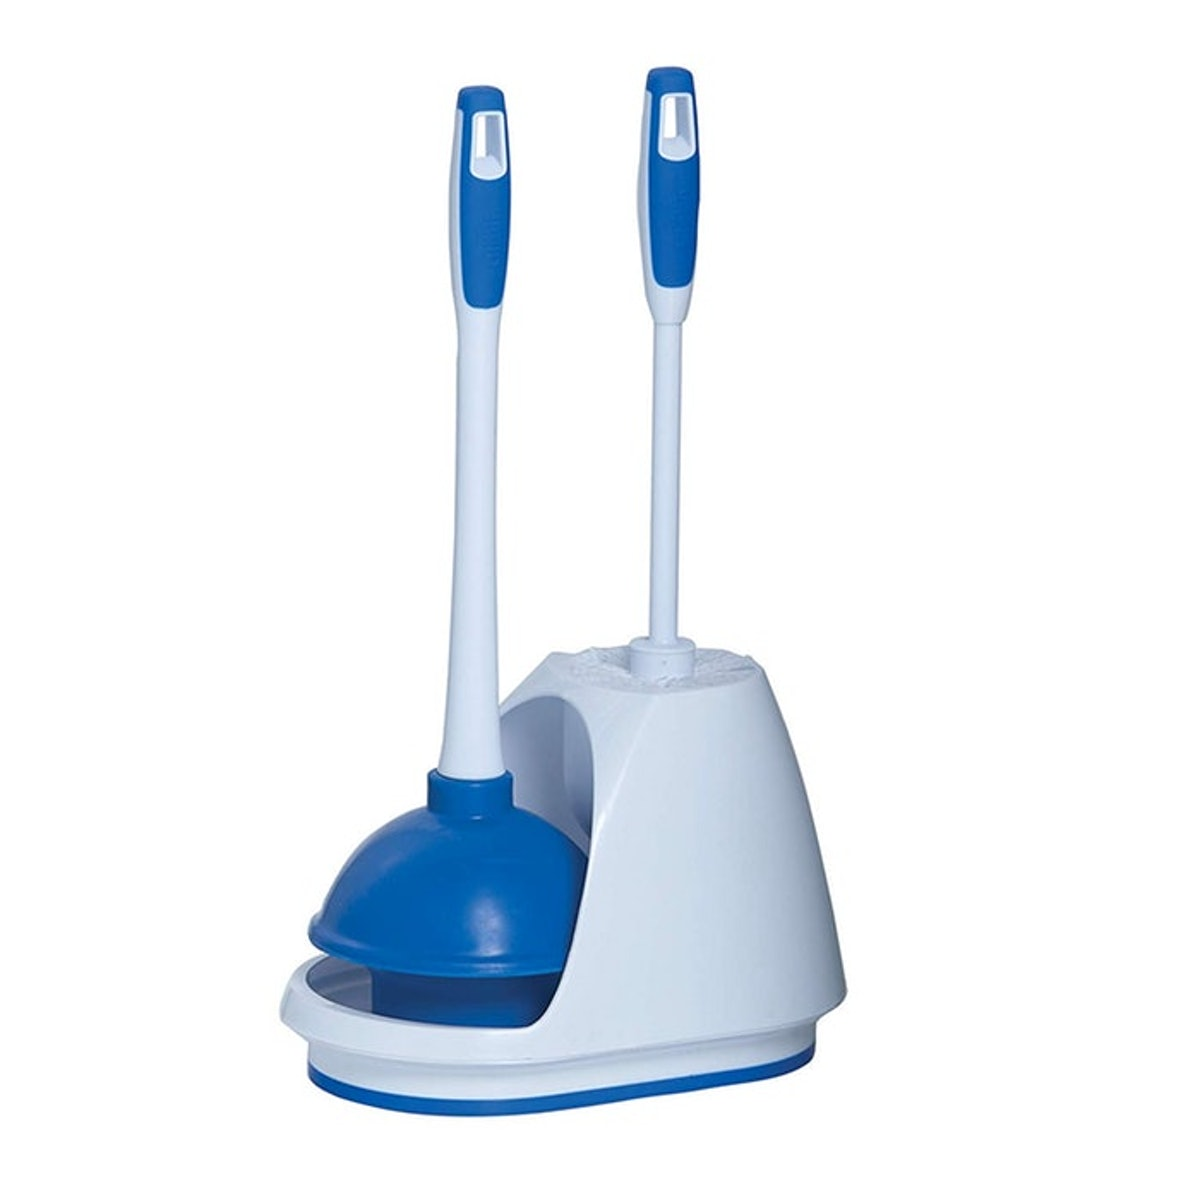 Mr. Clean Plunger And Bowl Brush Caddy Set